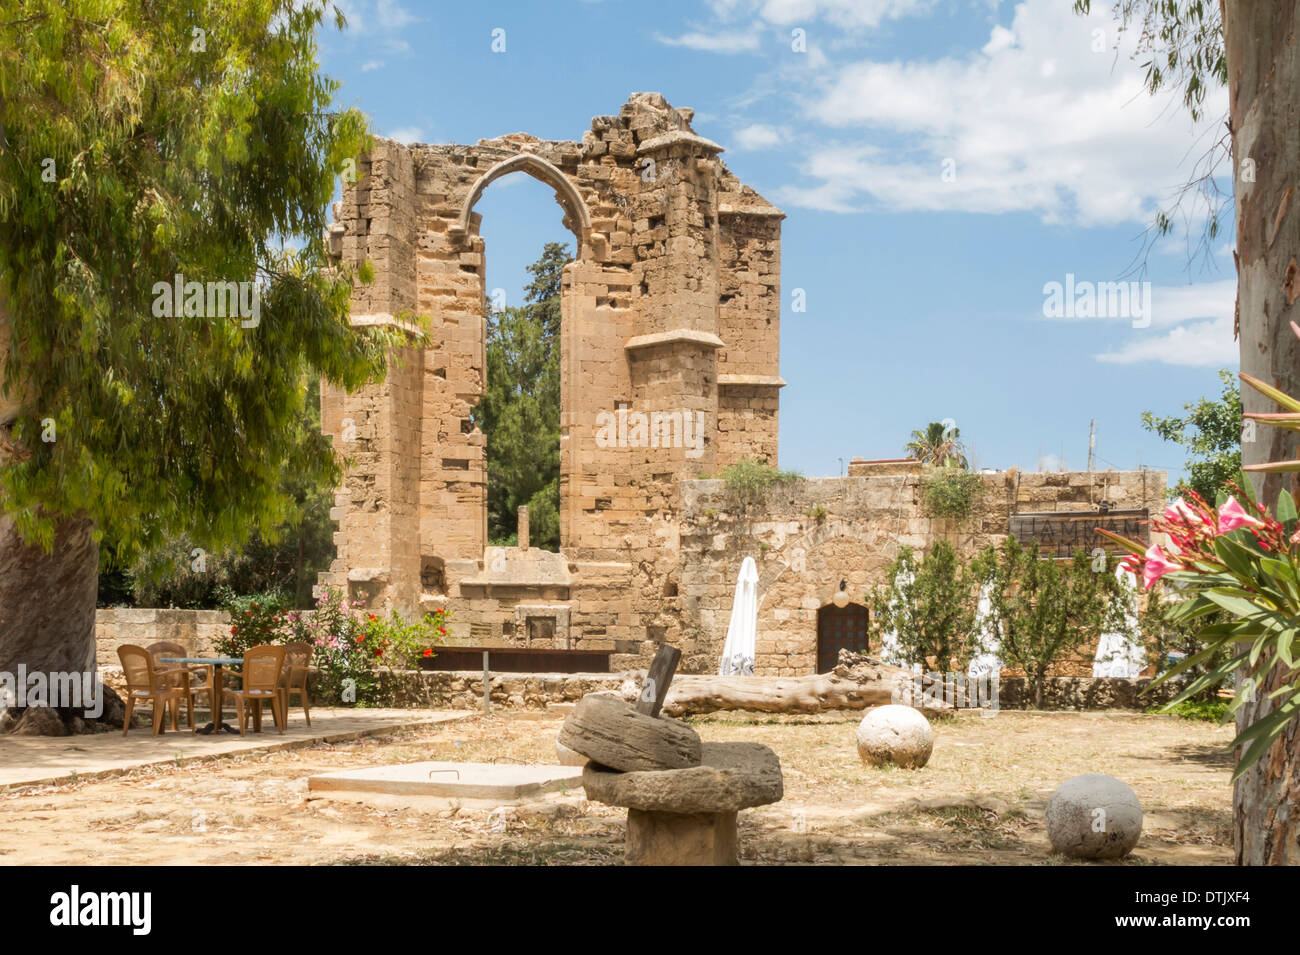 Ancient Ruins in Famagusta Cyprus - Stock Image